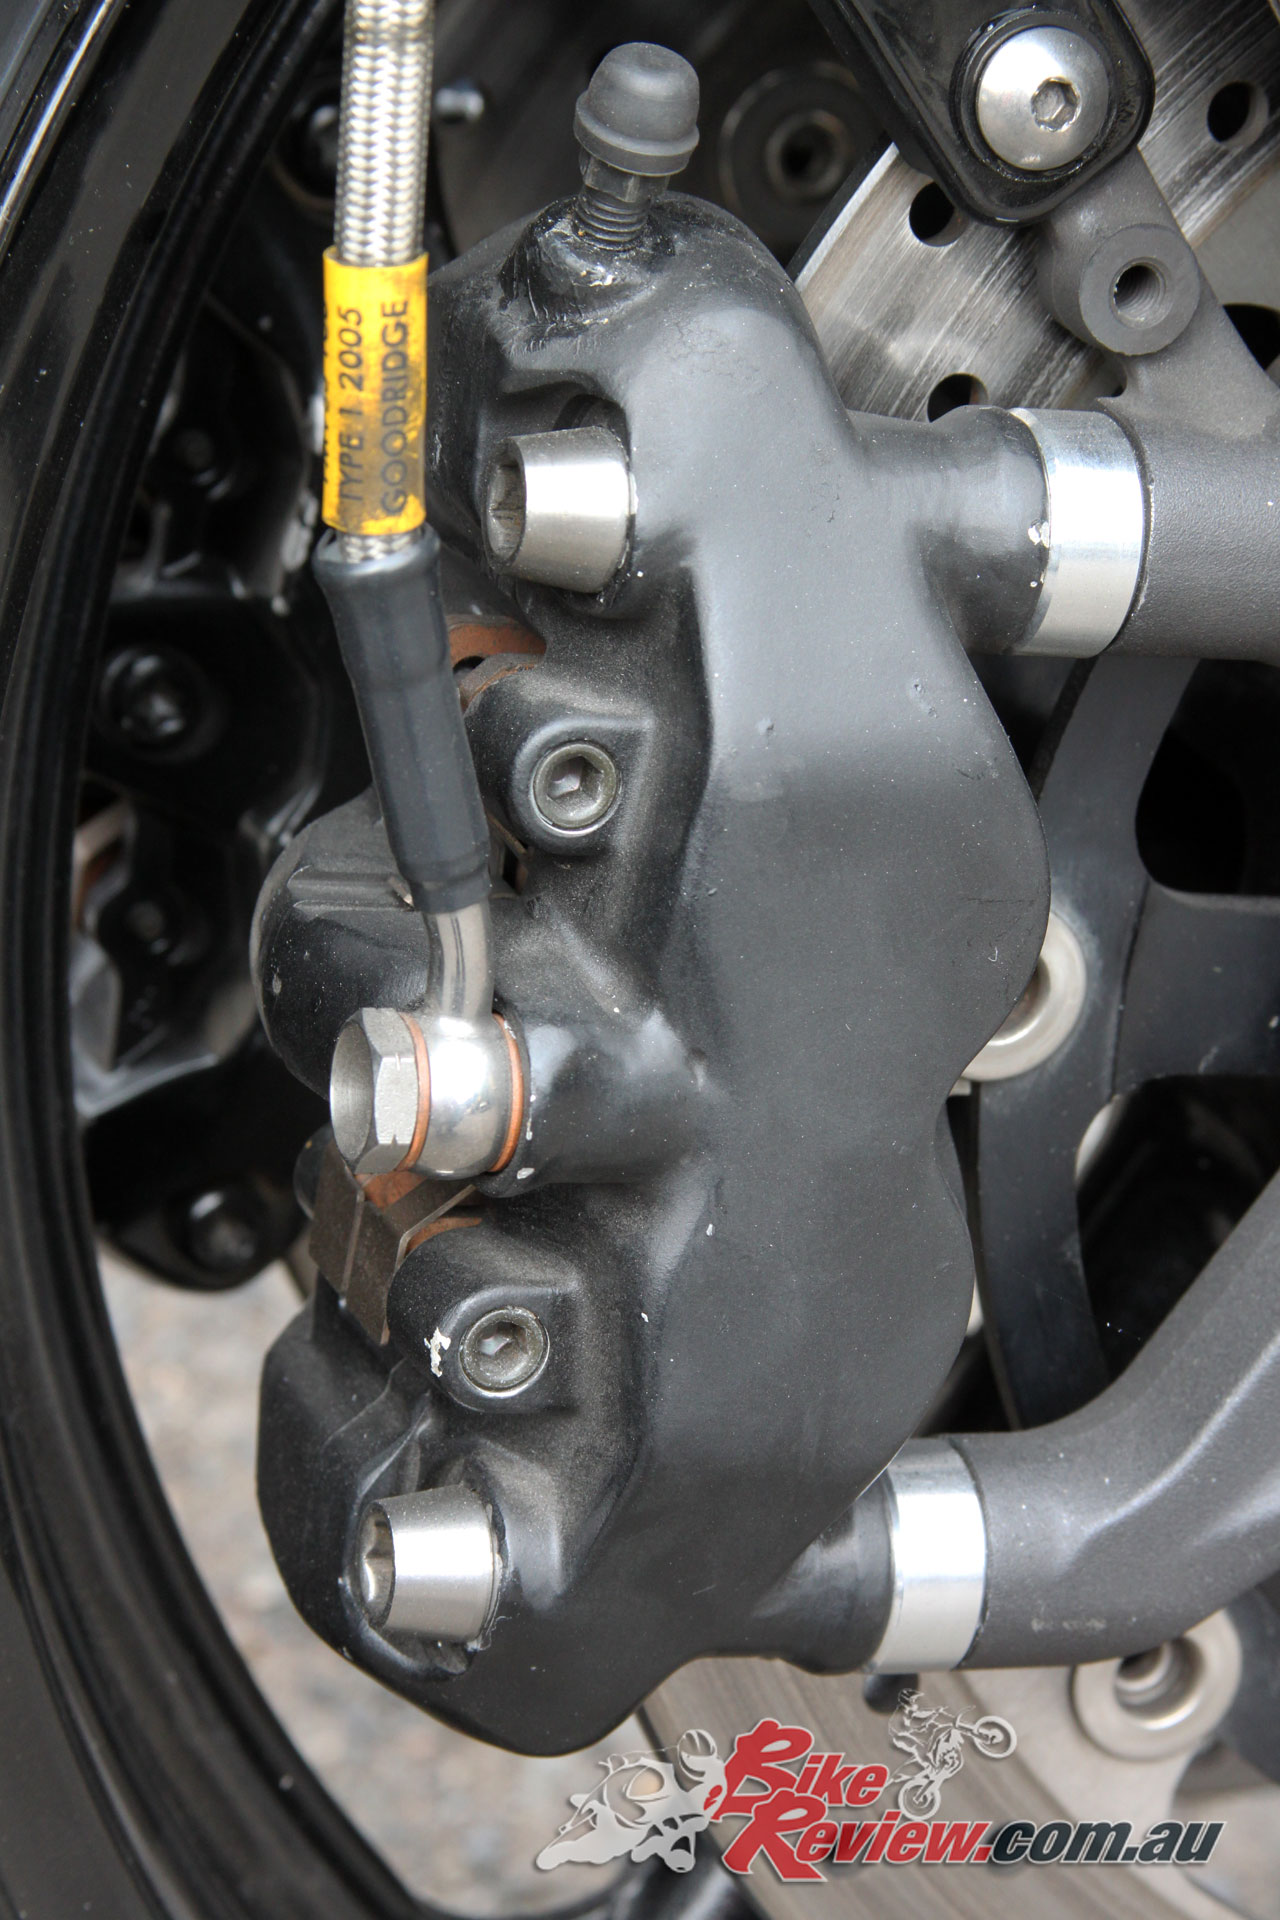 Smoothed and painted Tokico calipers adorn the GSX-R1000 forks